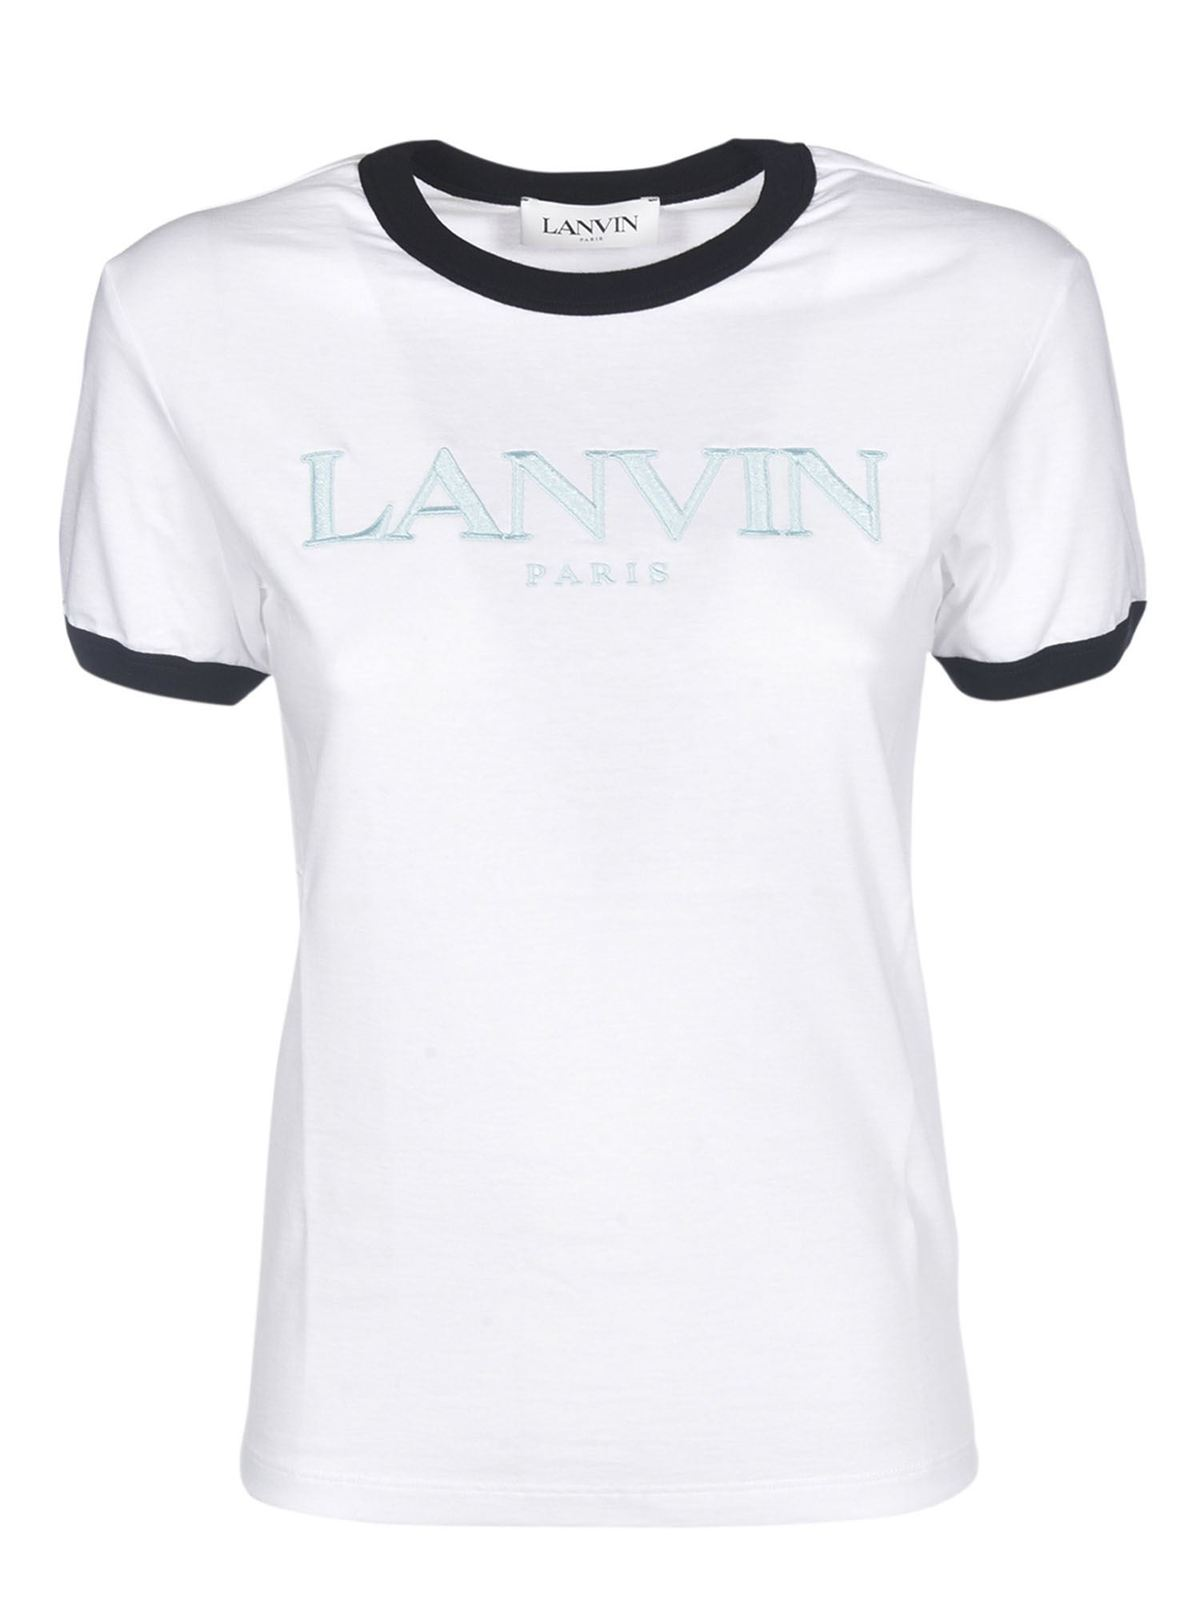 Lanvin Cottons BRANDED T-SHIRT IN WHITE